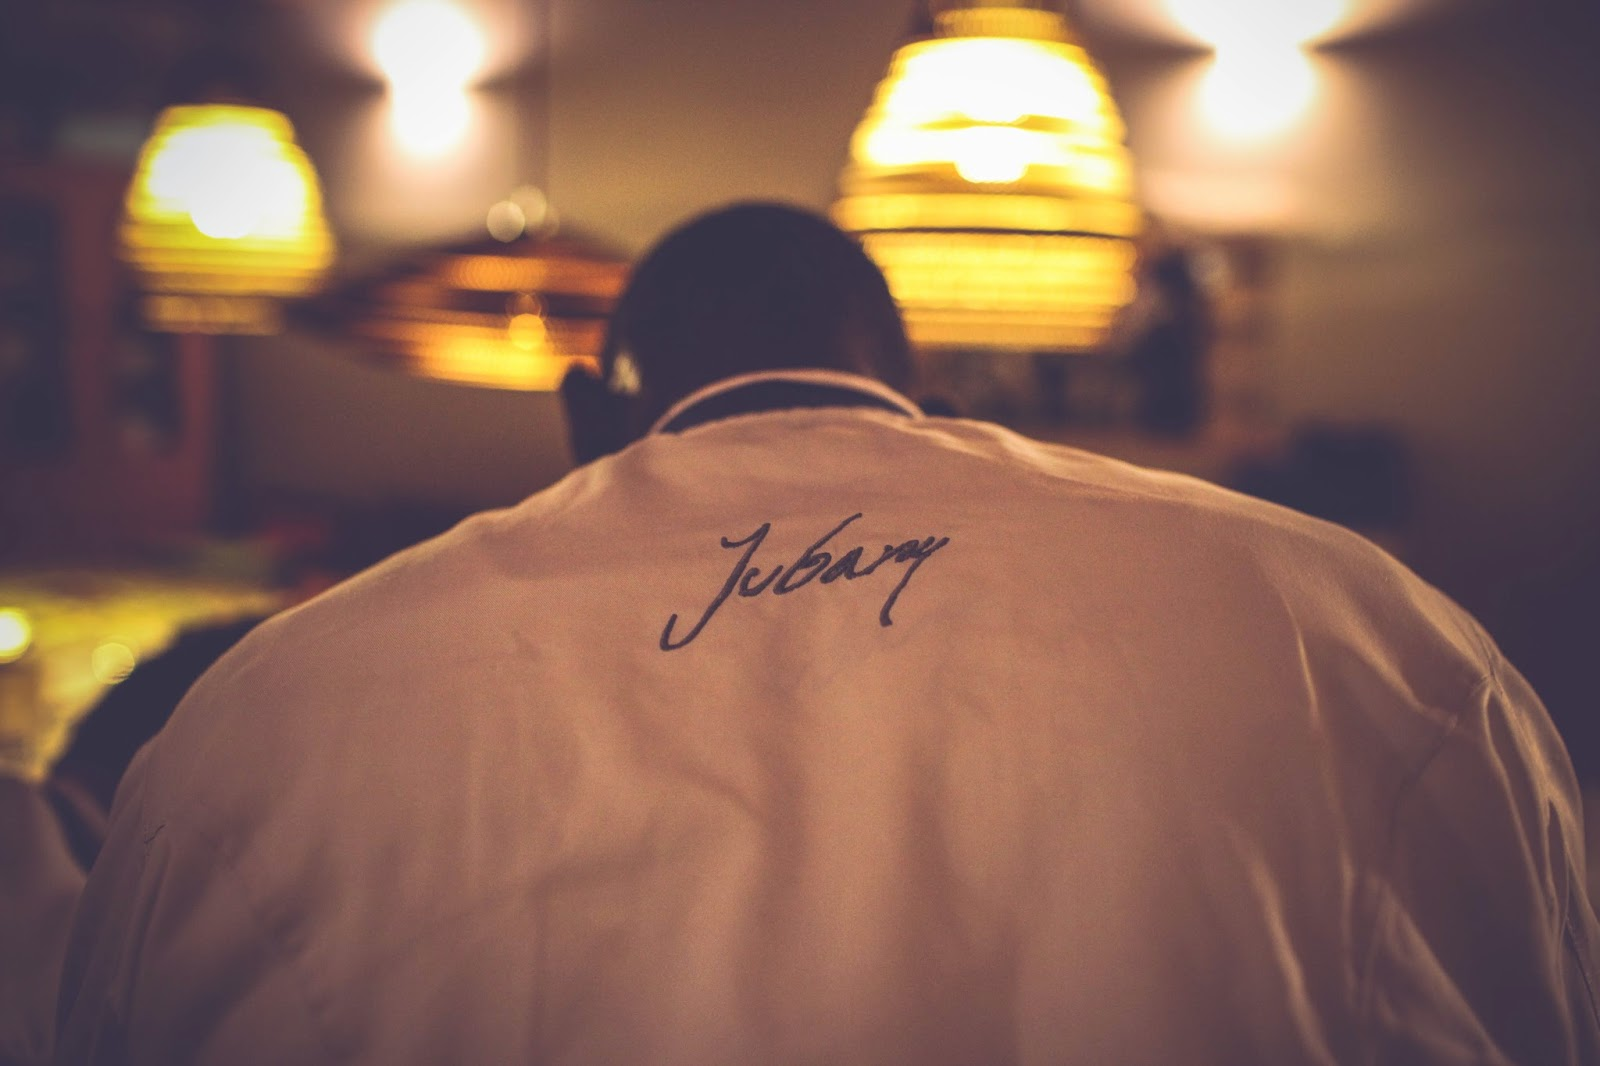 catering can jubany